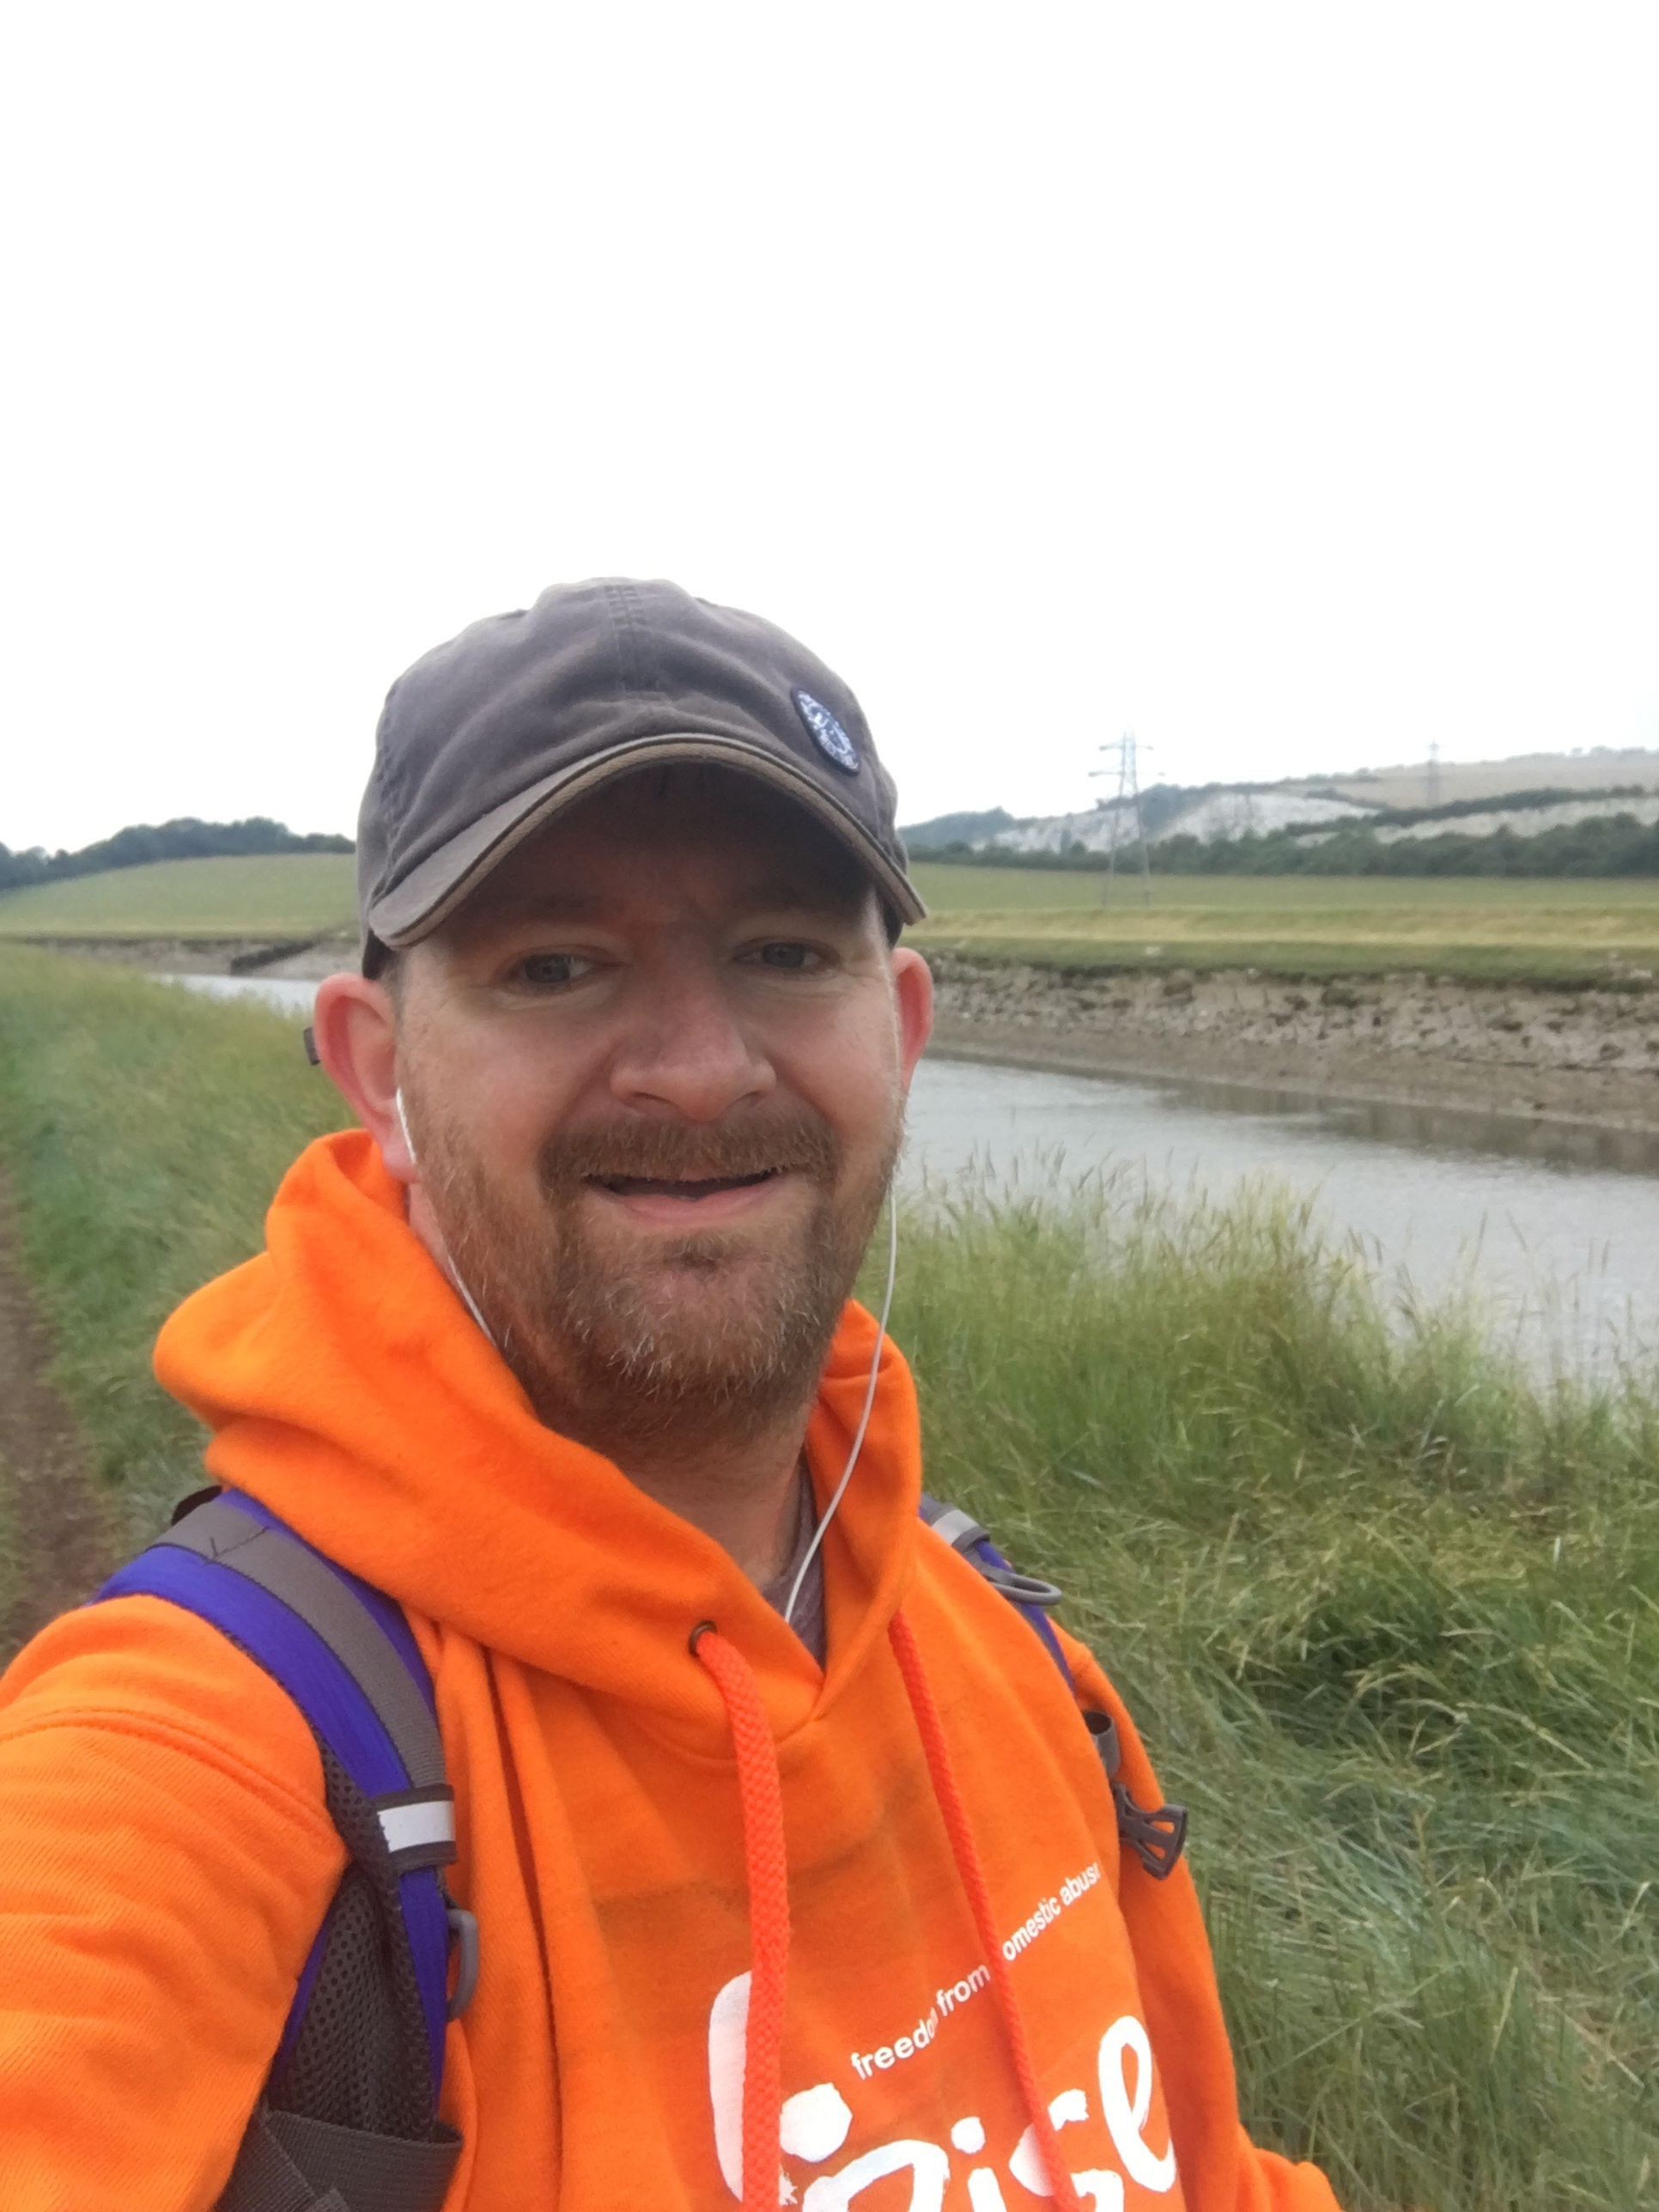 Me in my RISE hoodie walking from Lewes to Newhaven along the river